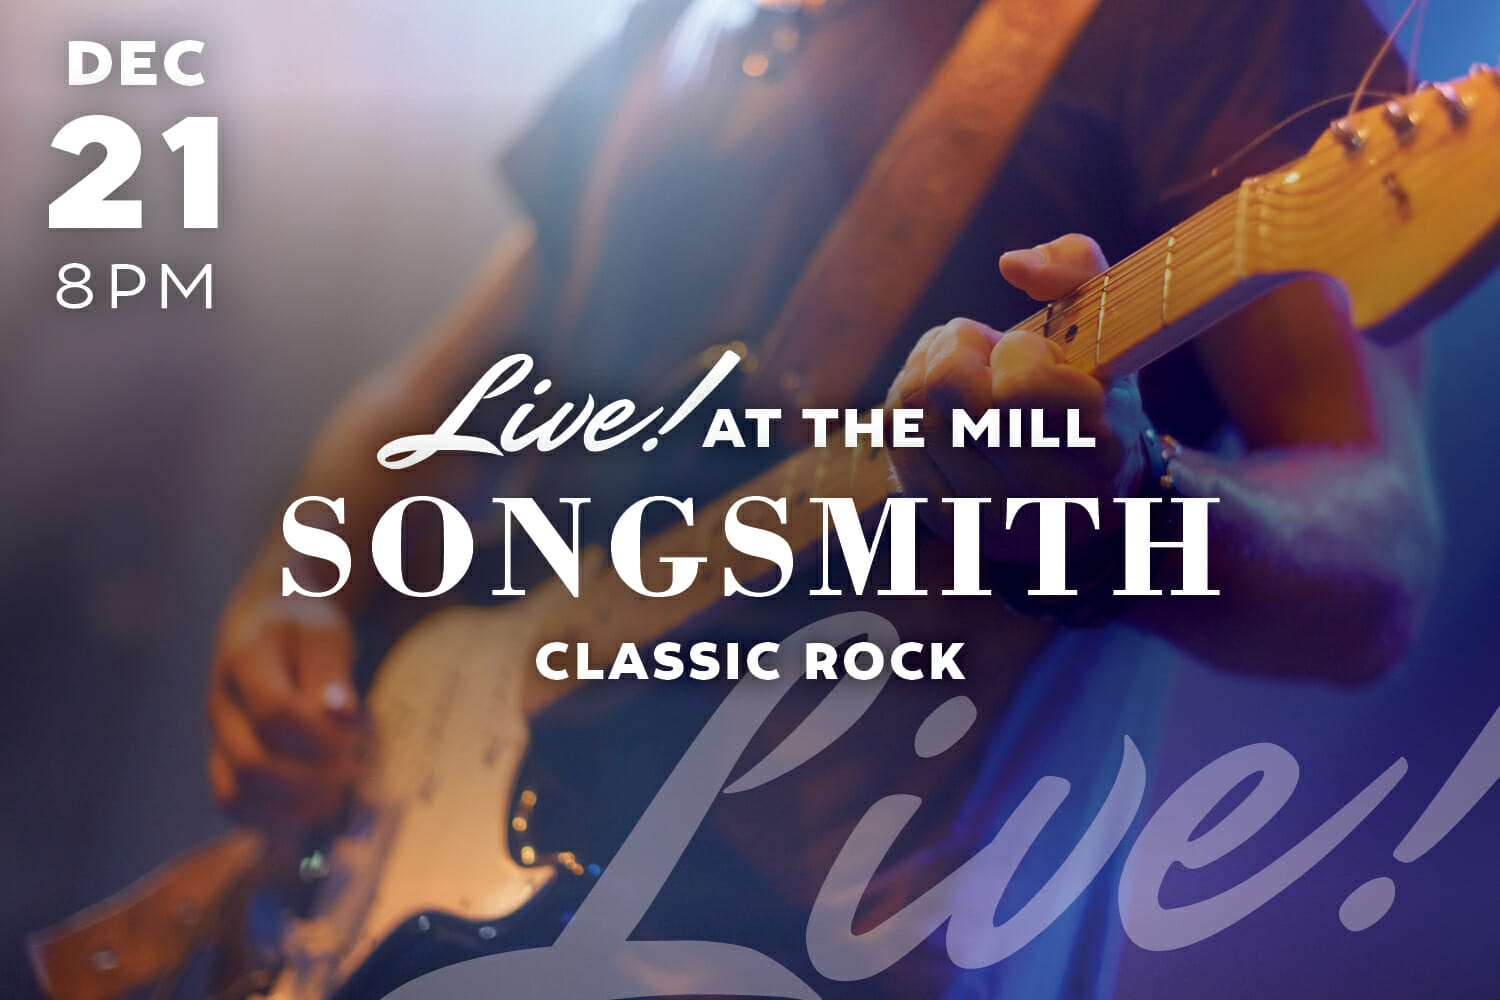 live at the mill - songsmith - classic rock graphic